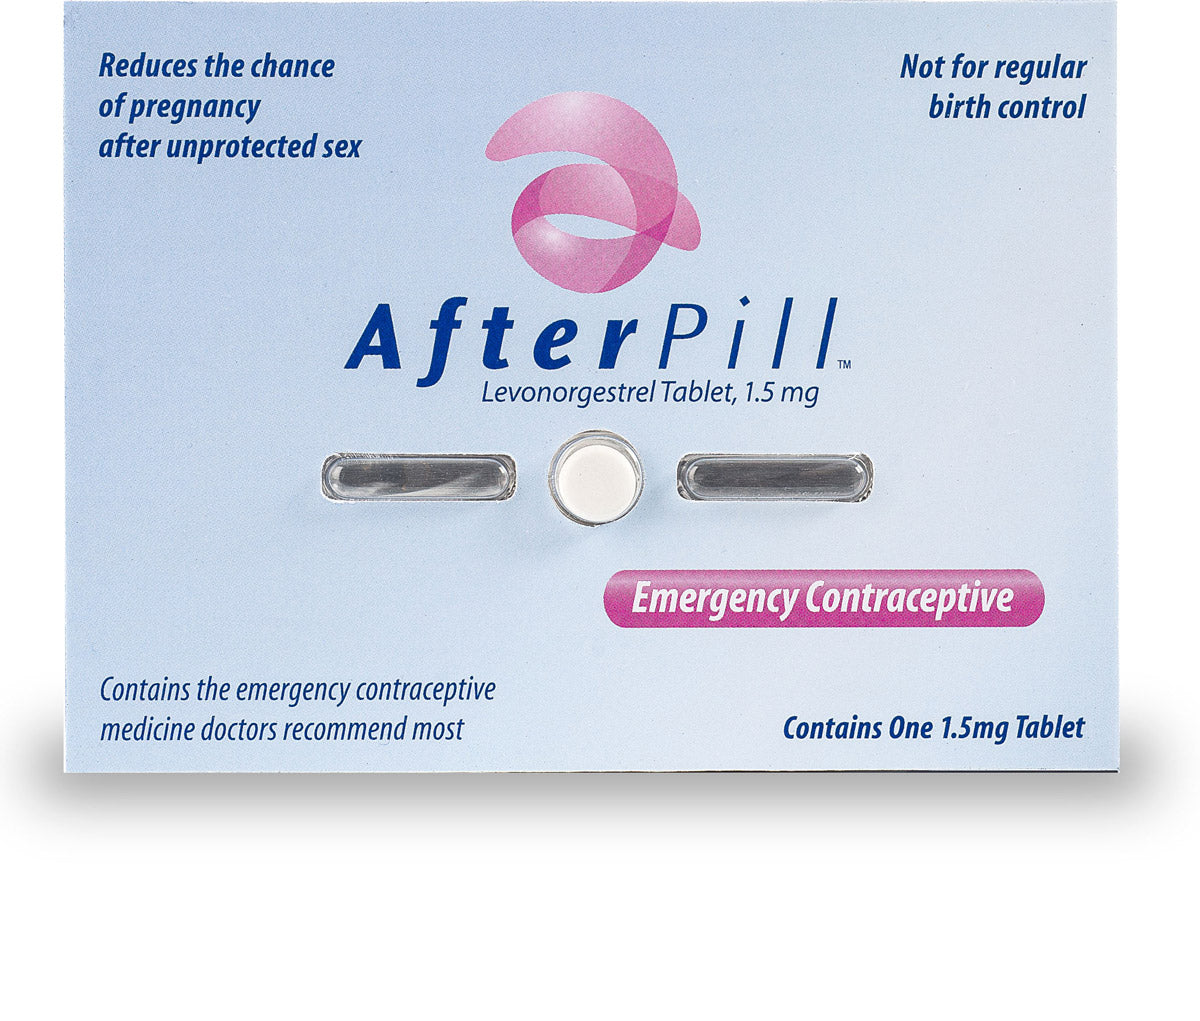 Save Off Plan B Cost With Afterpill Syzygy Healthcare